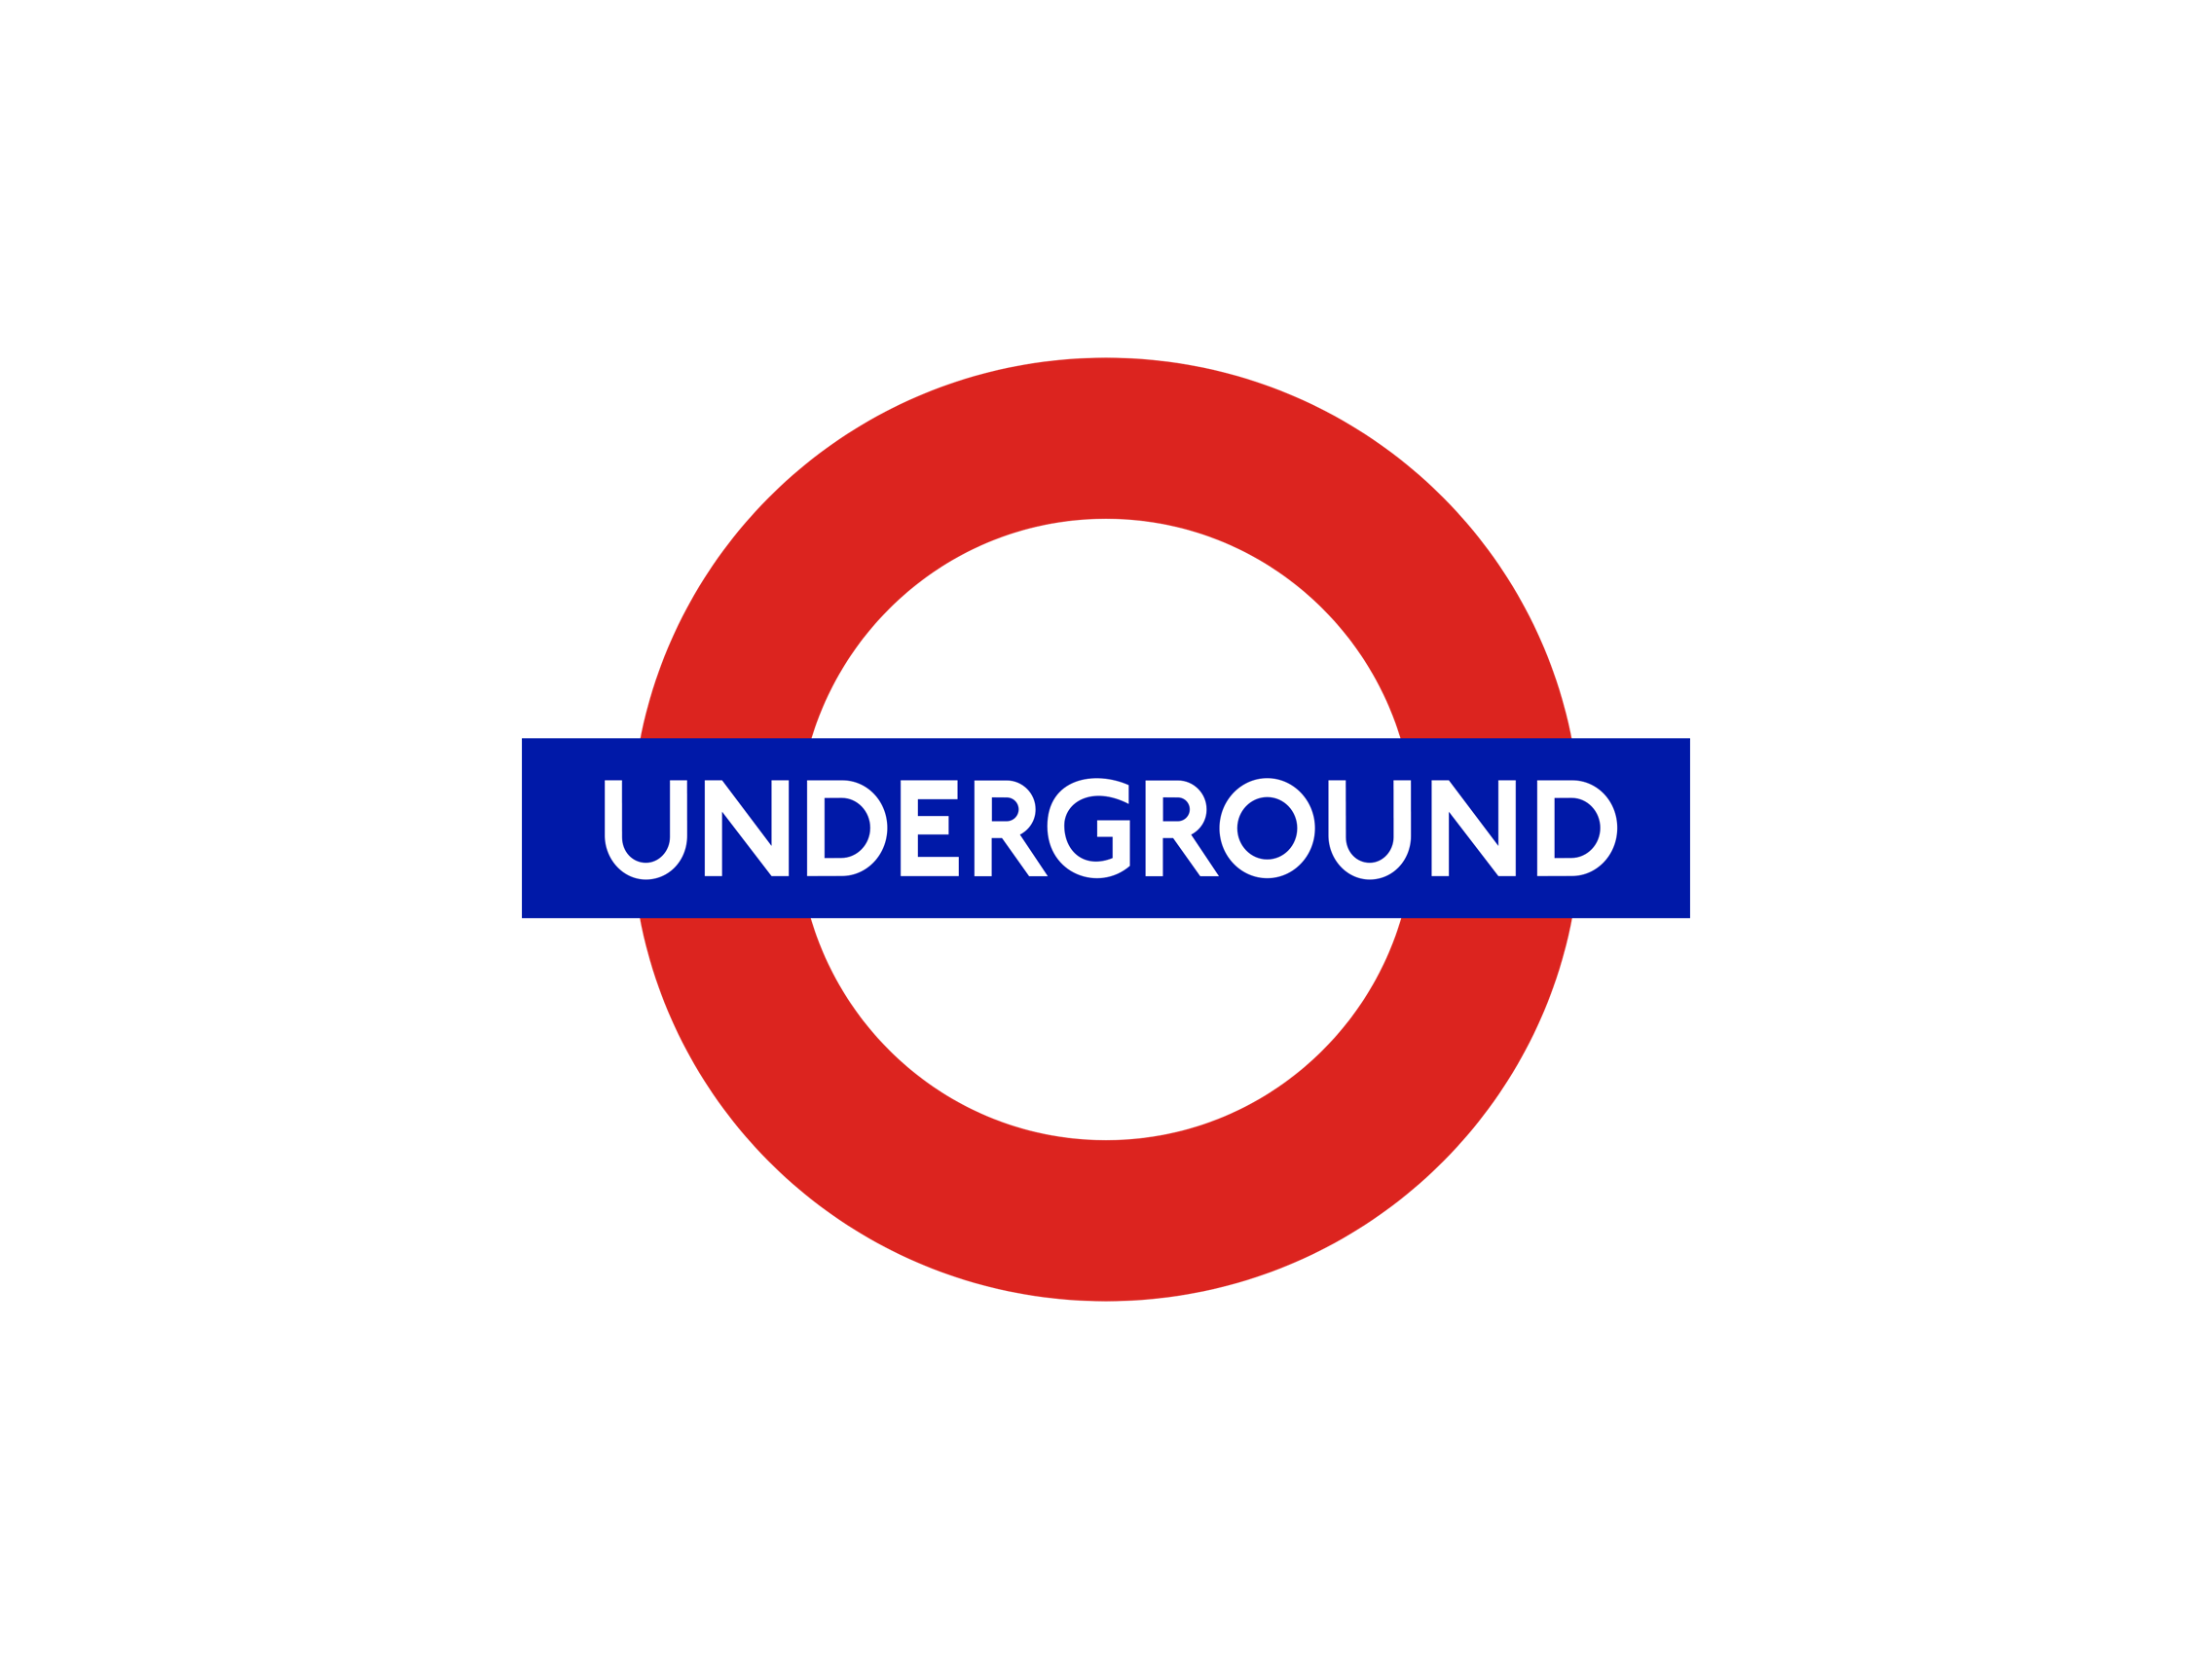 2010 Logo Png Burger King Logo Png London Underground Logo.